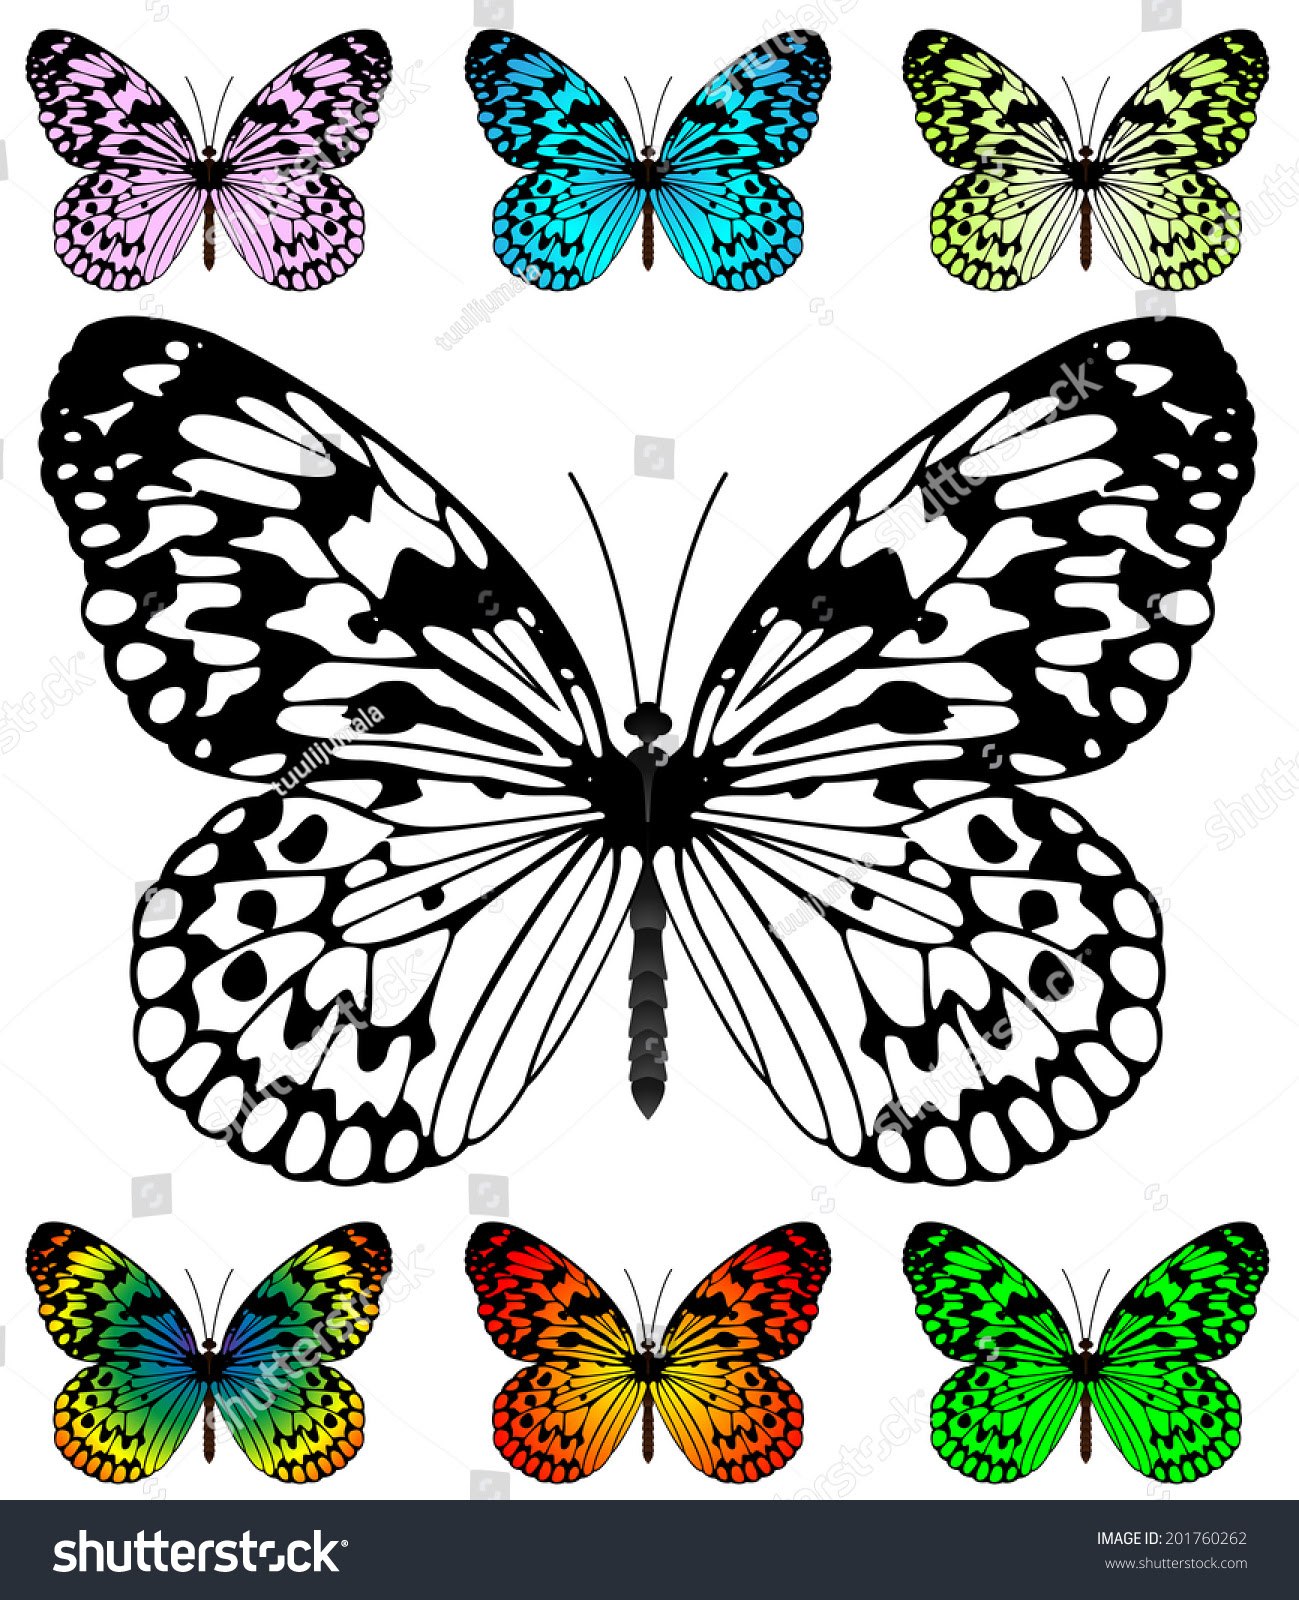 Butterfly Template Samples Easy Editable Wings Stock Illustration ...